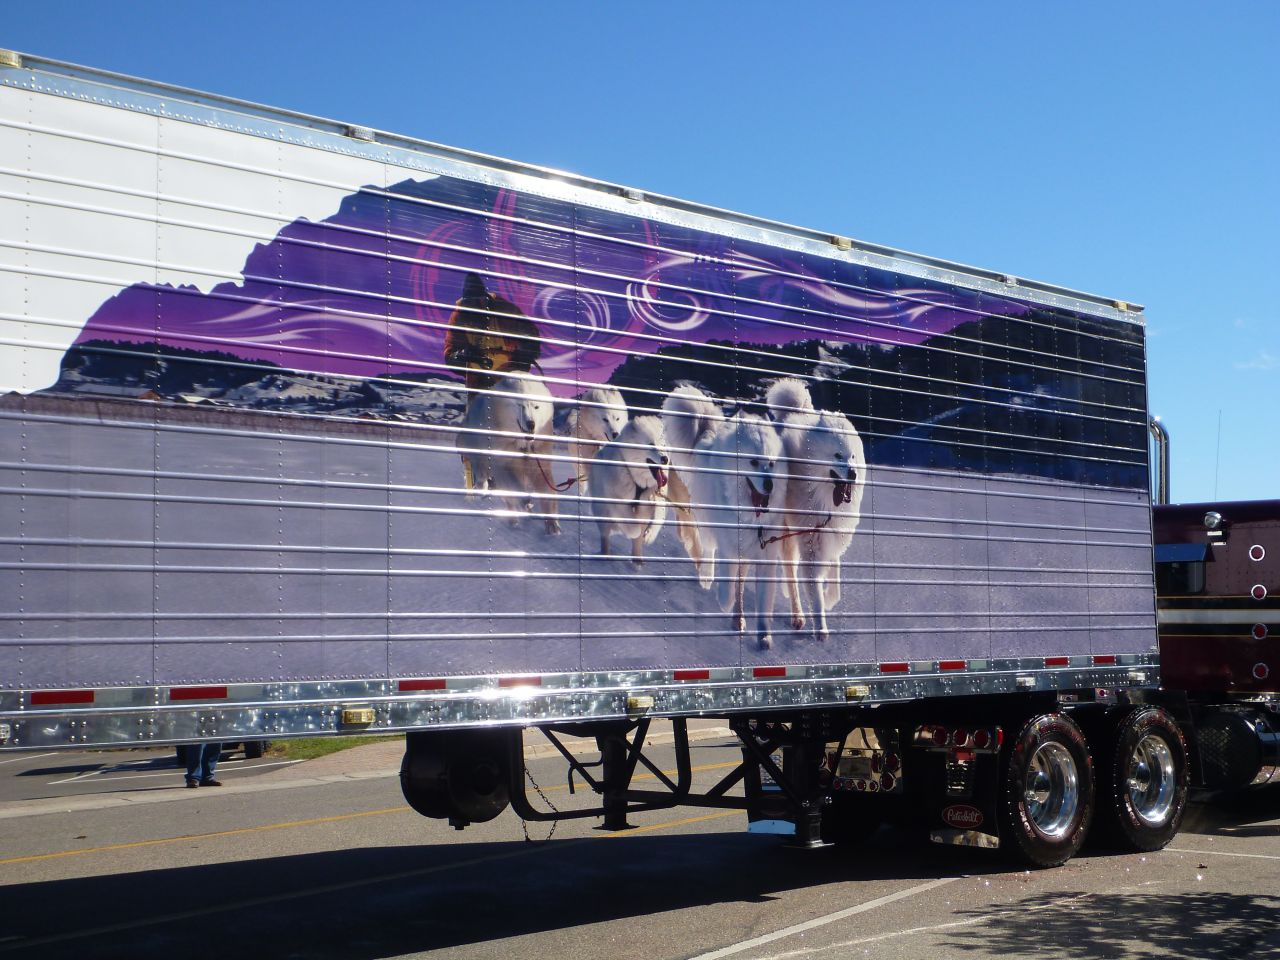 Sled Dogs Painted On The Side Of A Trailer.